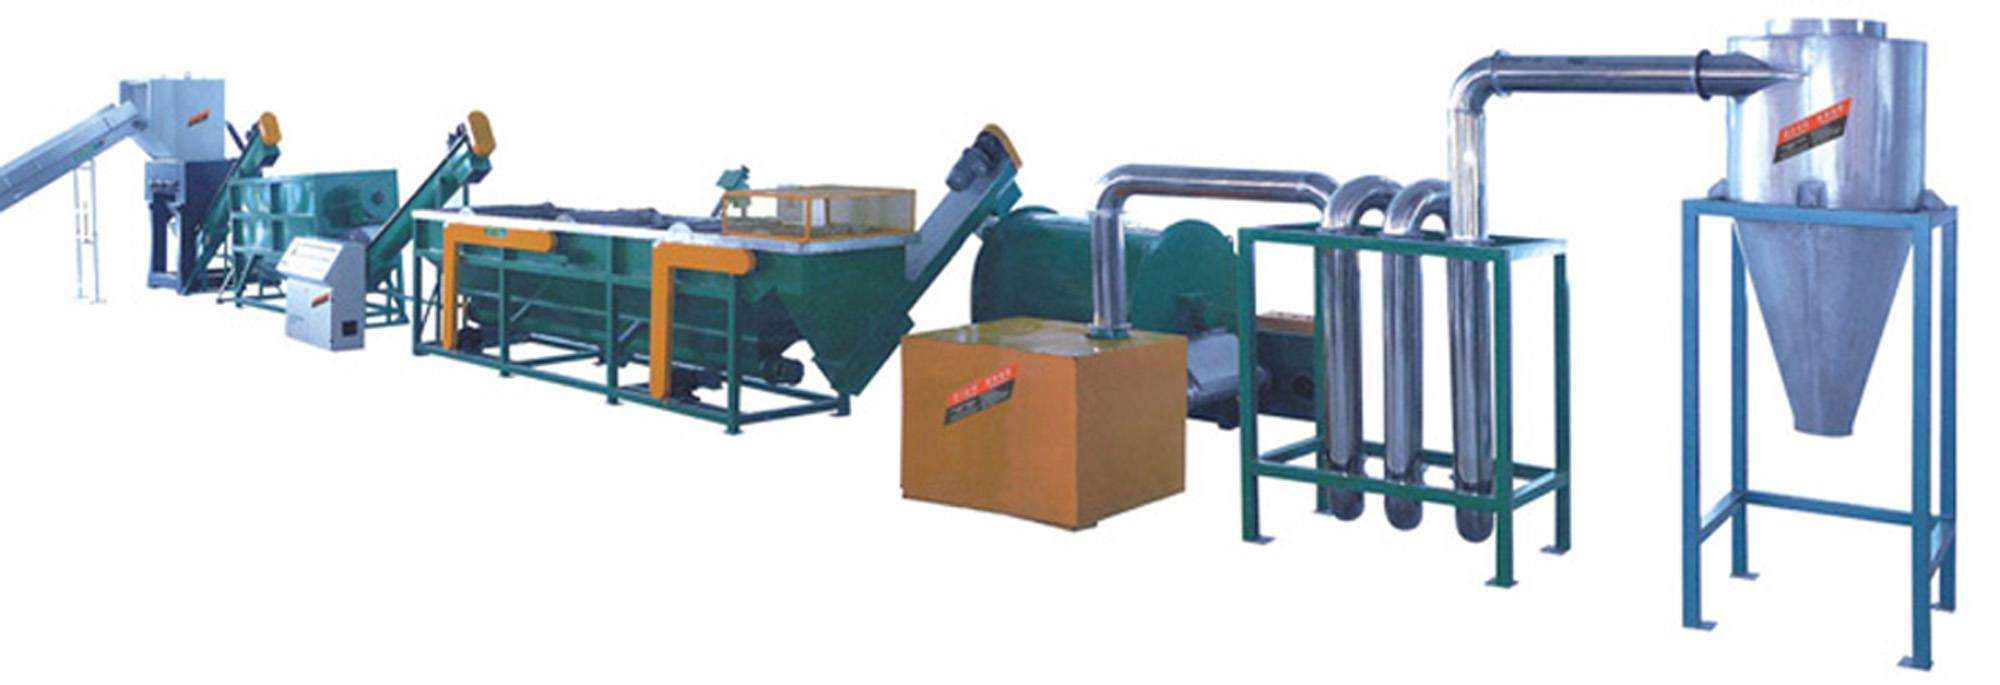 PP/PE film crushing and washing line